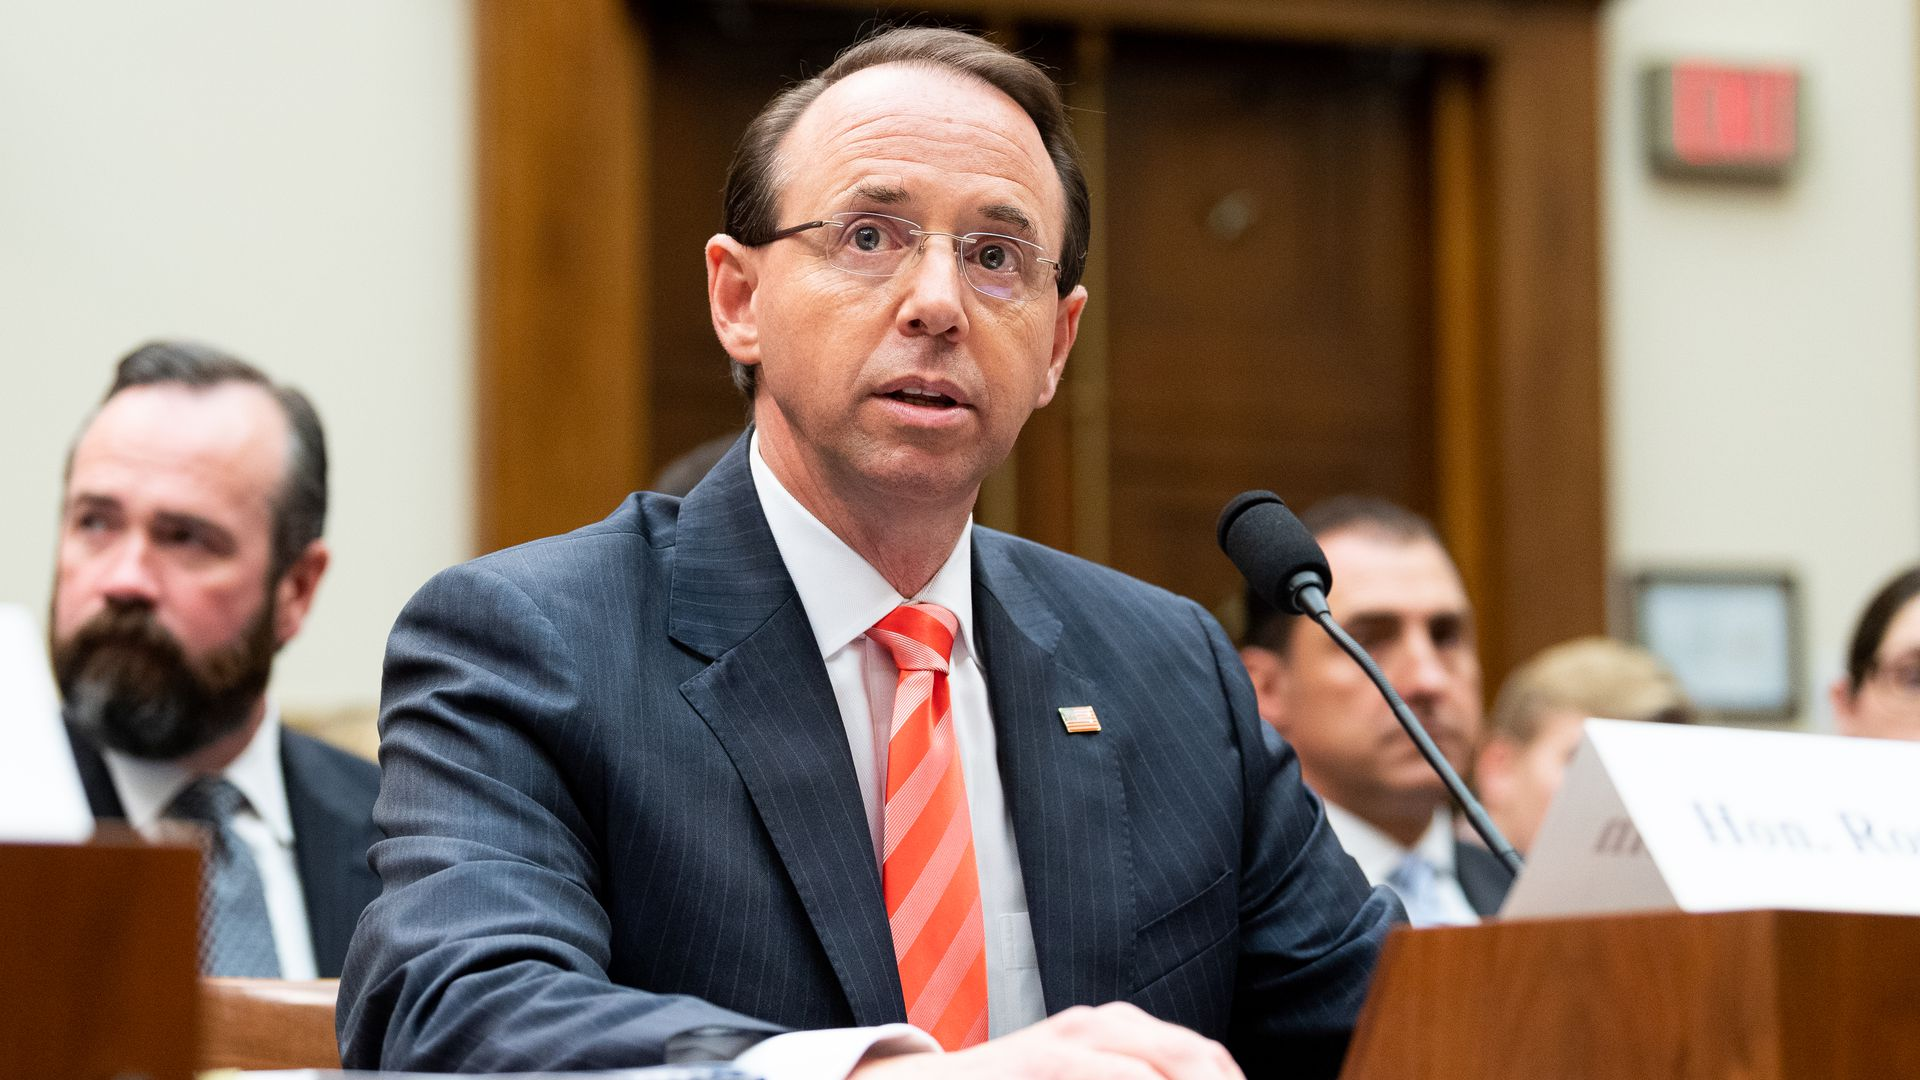 Rod Rosenstein, Deputy Attorney General. Photo: Michael Brochstein/SOPA Images/LightRocket via Getty Images